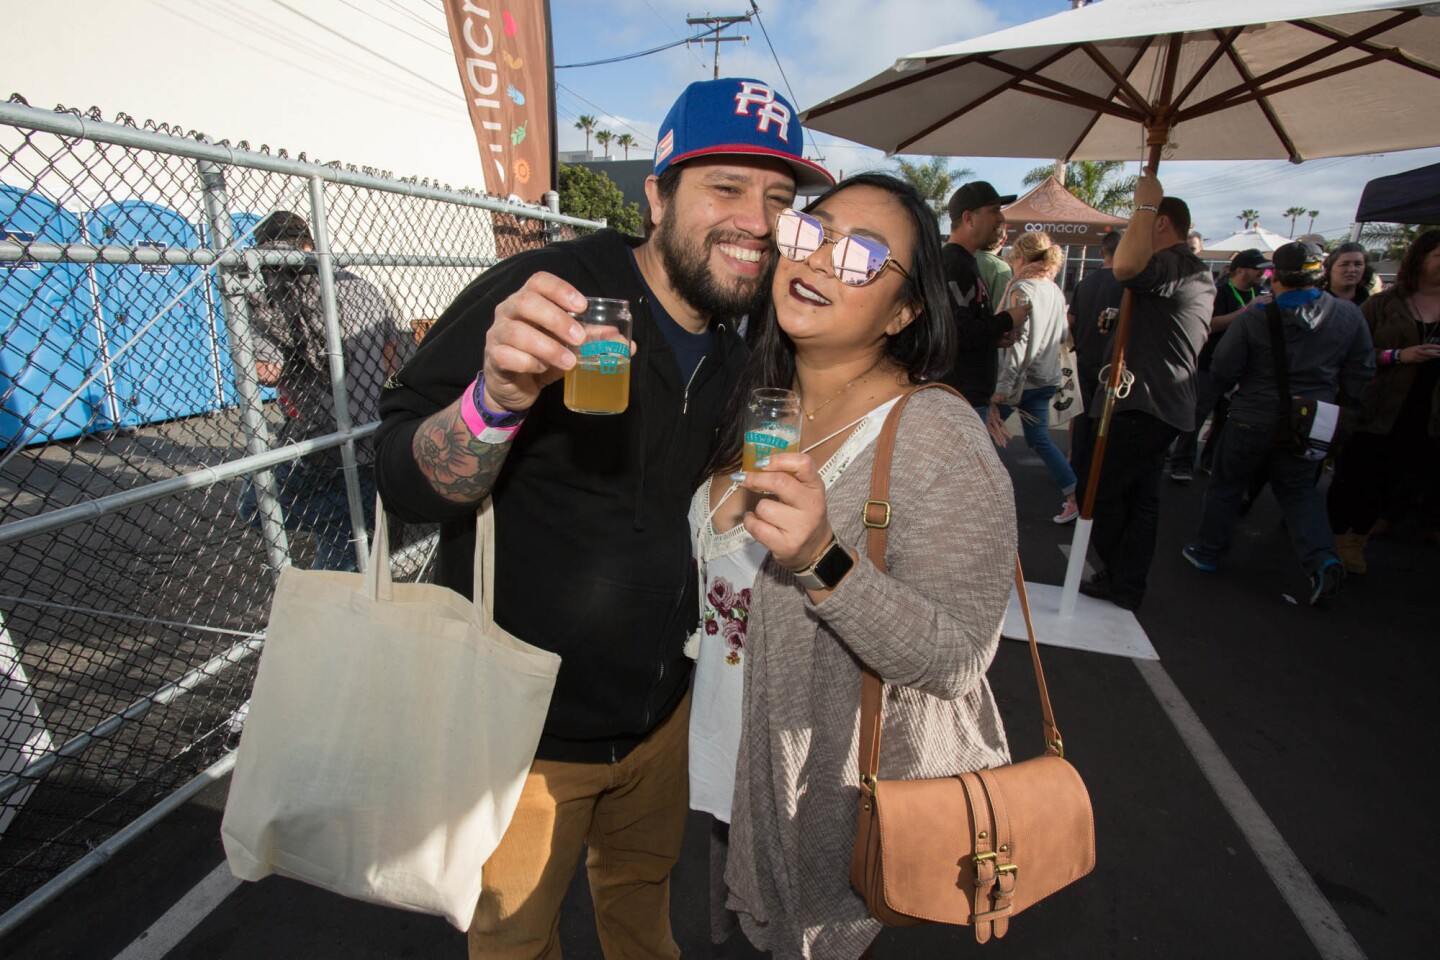 Bagby Beer hosted its annual Brewbies Festival on Feb. 11, 2017 to benefit the Keep A Breast Foundation. (Bradley Schweit)